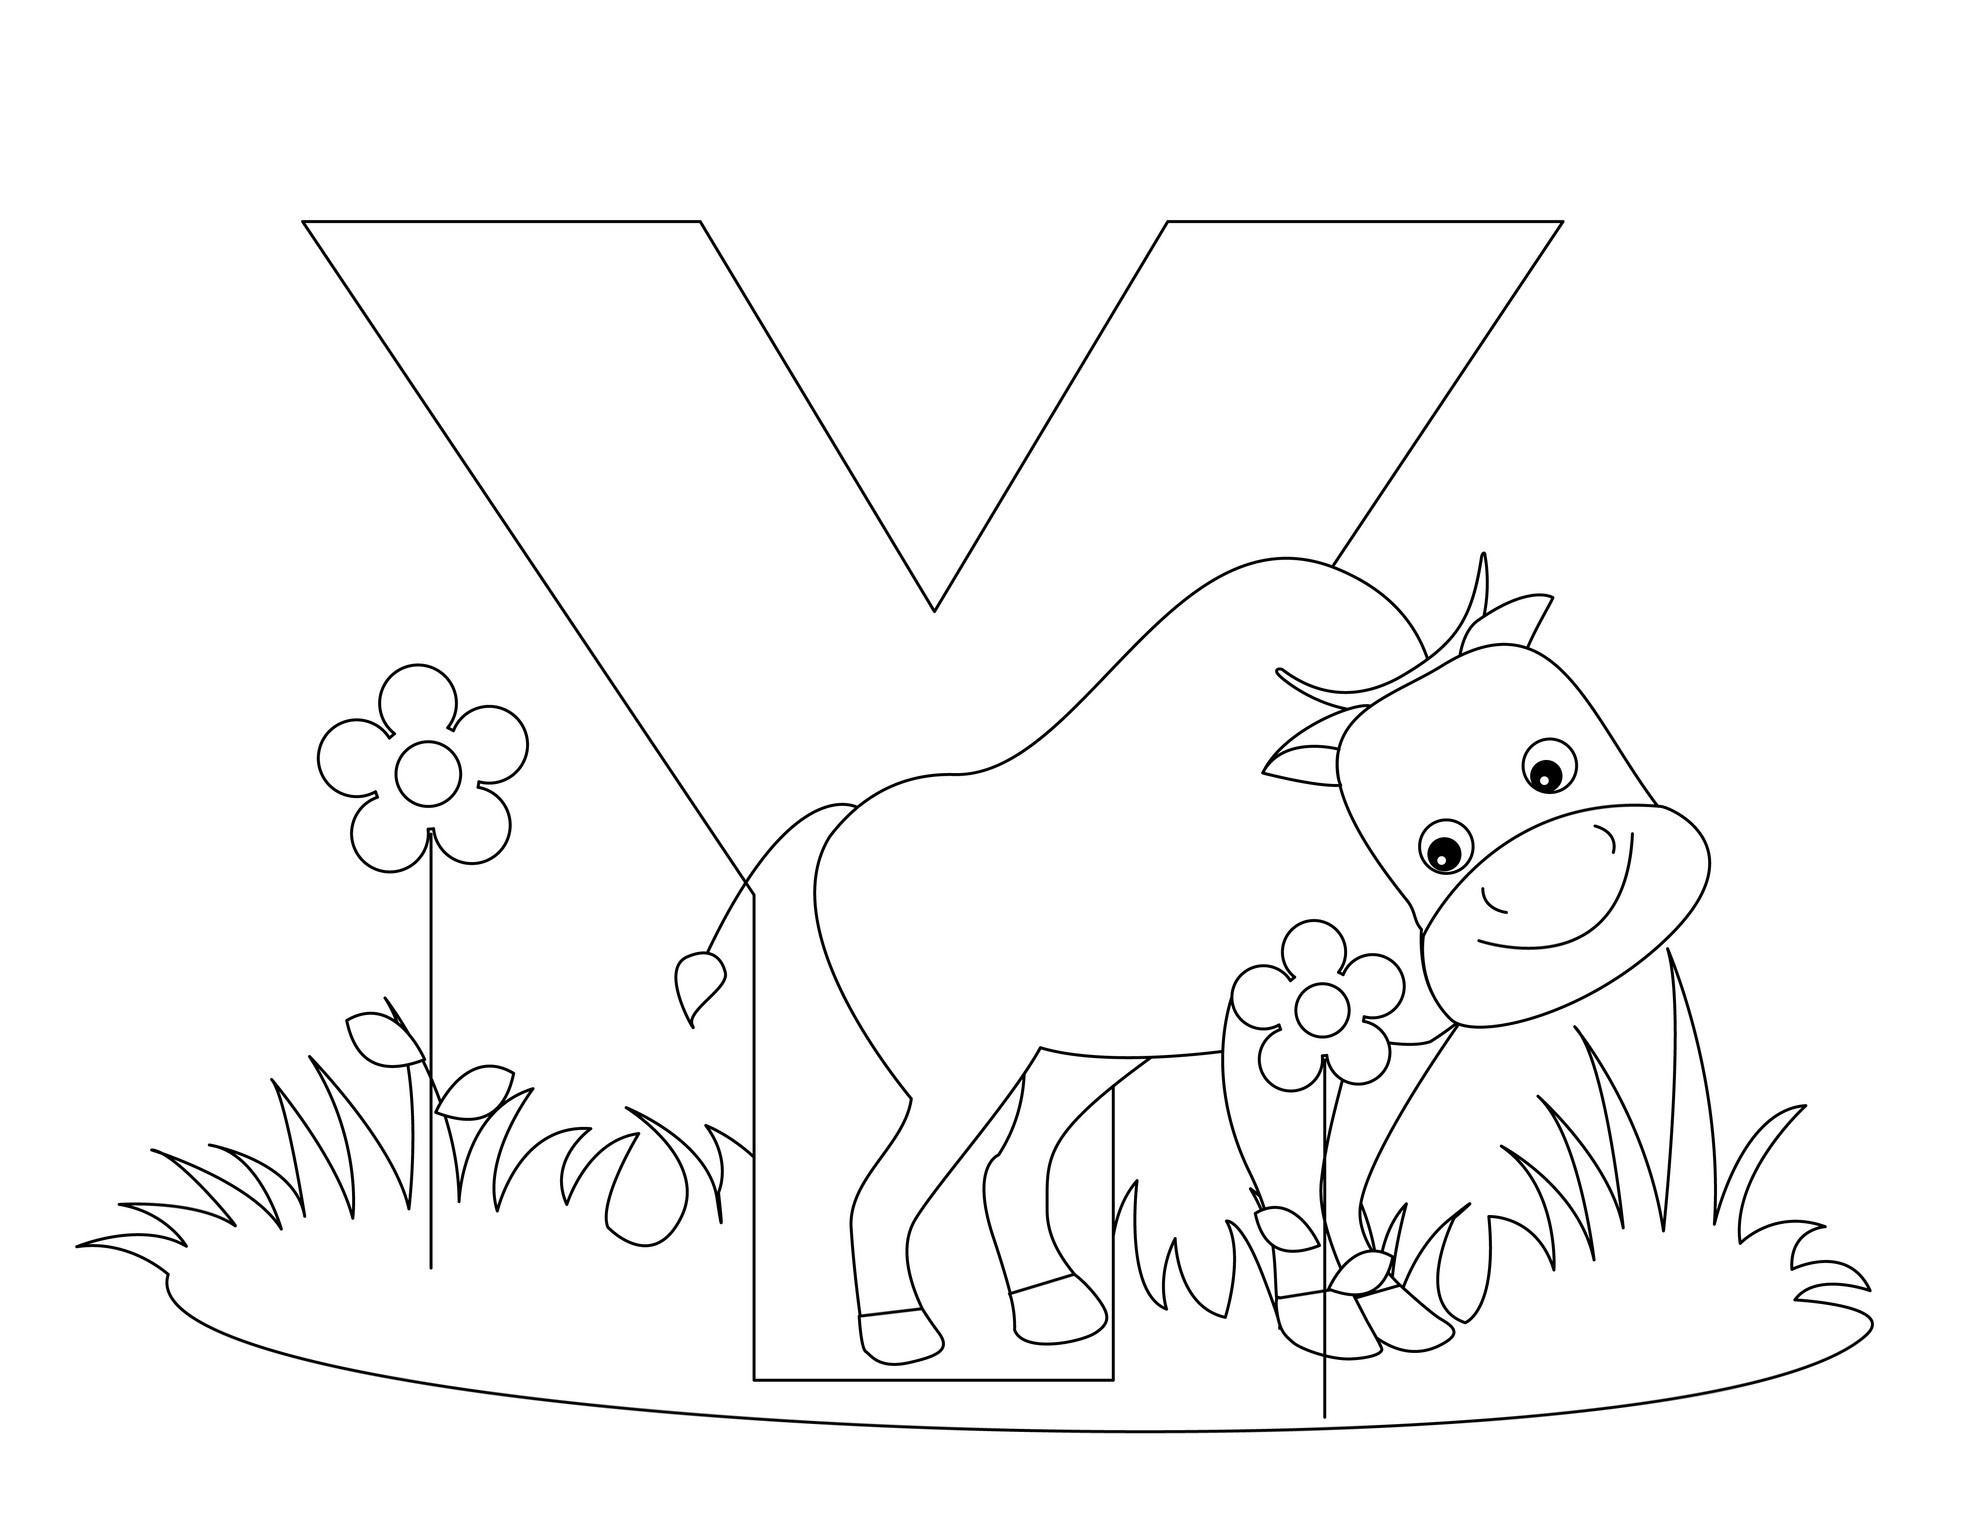 ASL Alphabet Coloring Pages  dltkteachcom